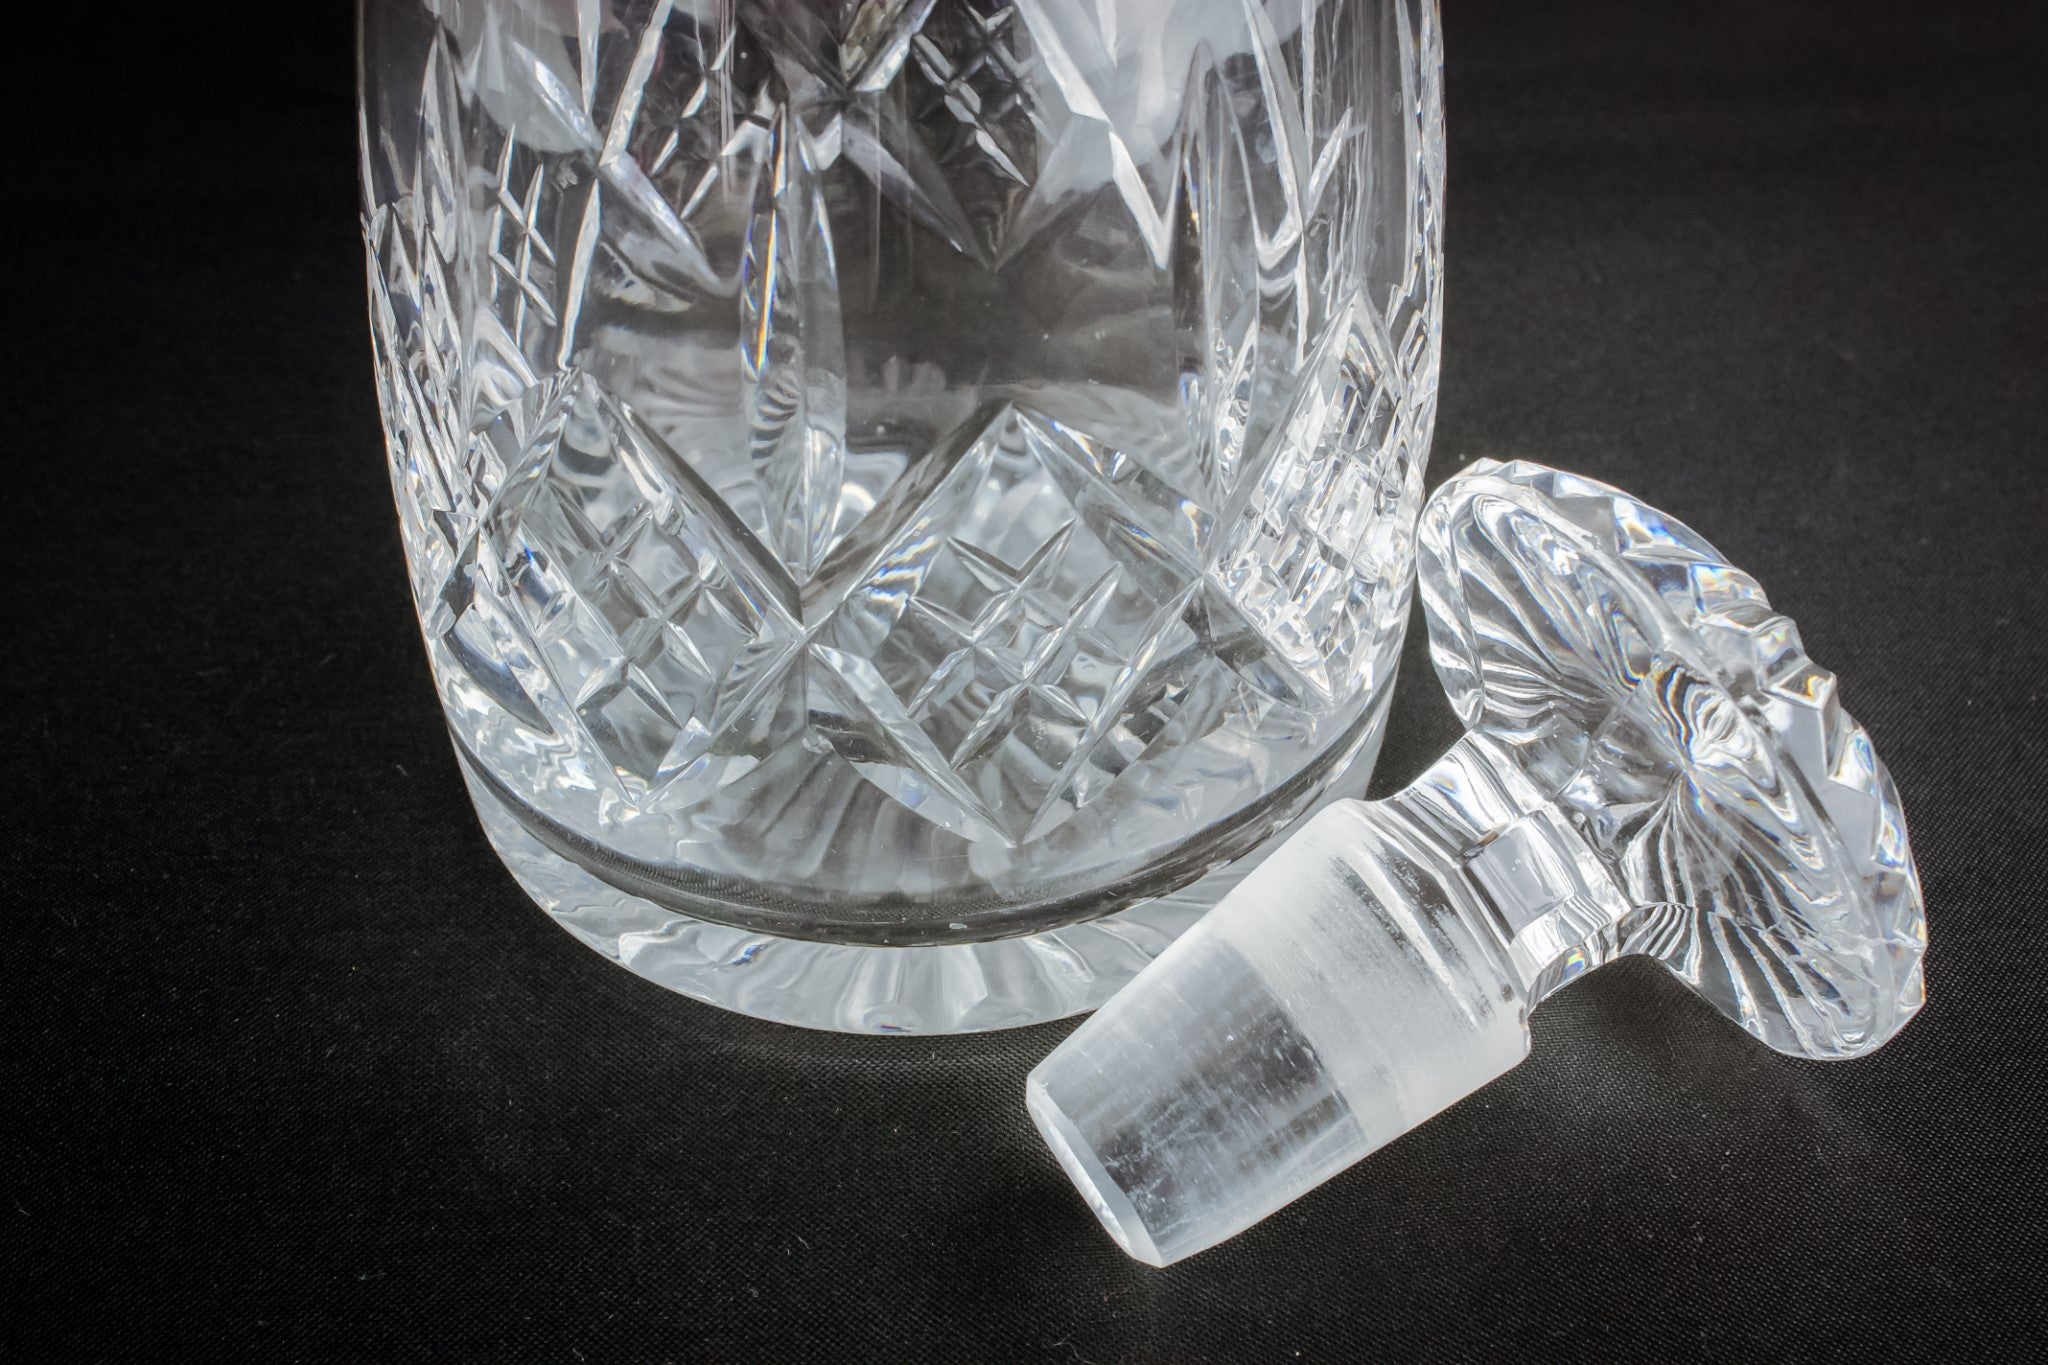 Moulded glass decanter